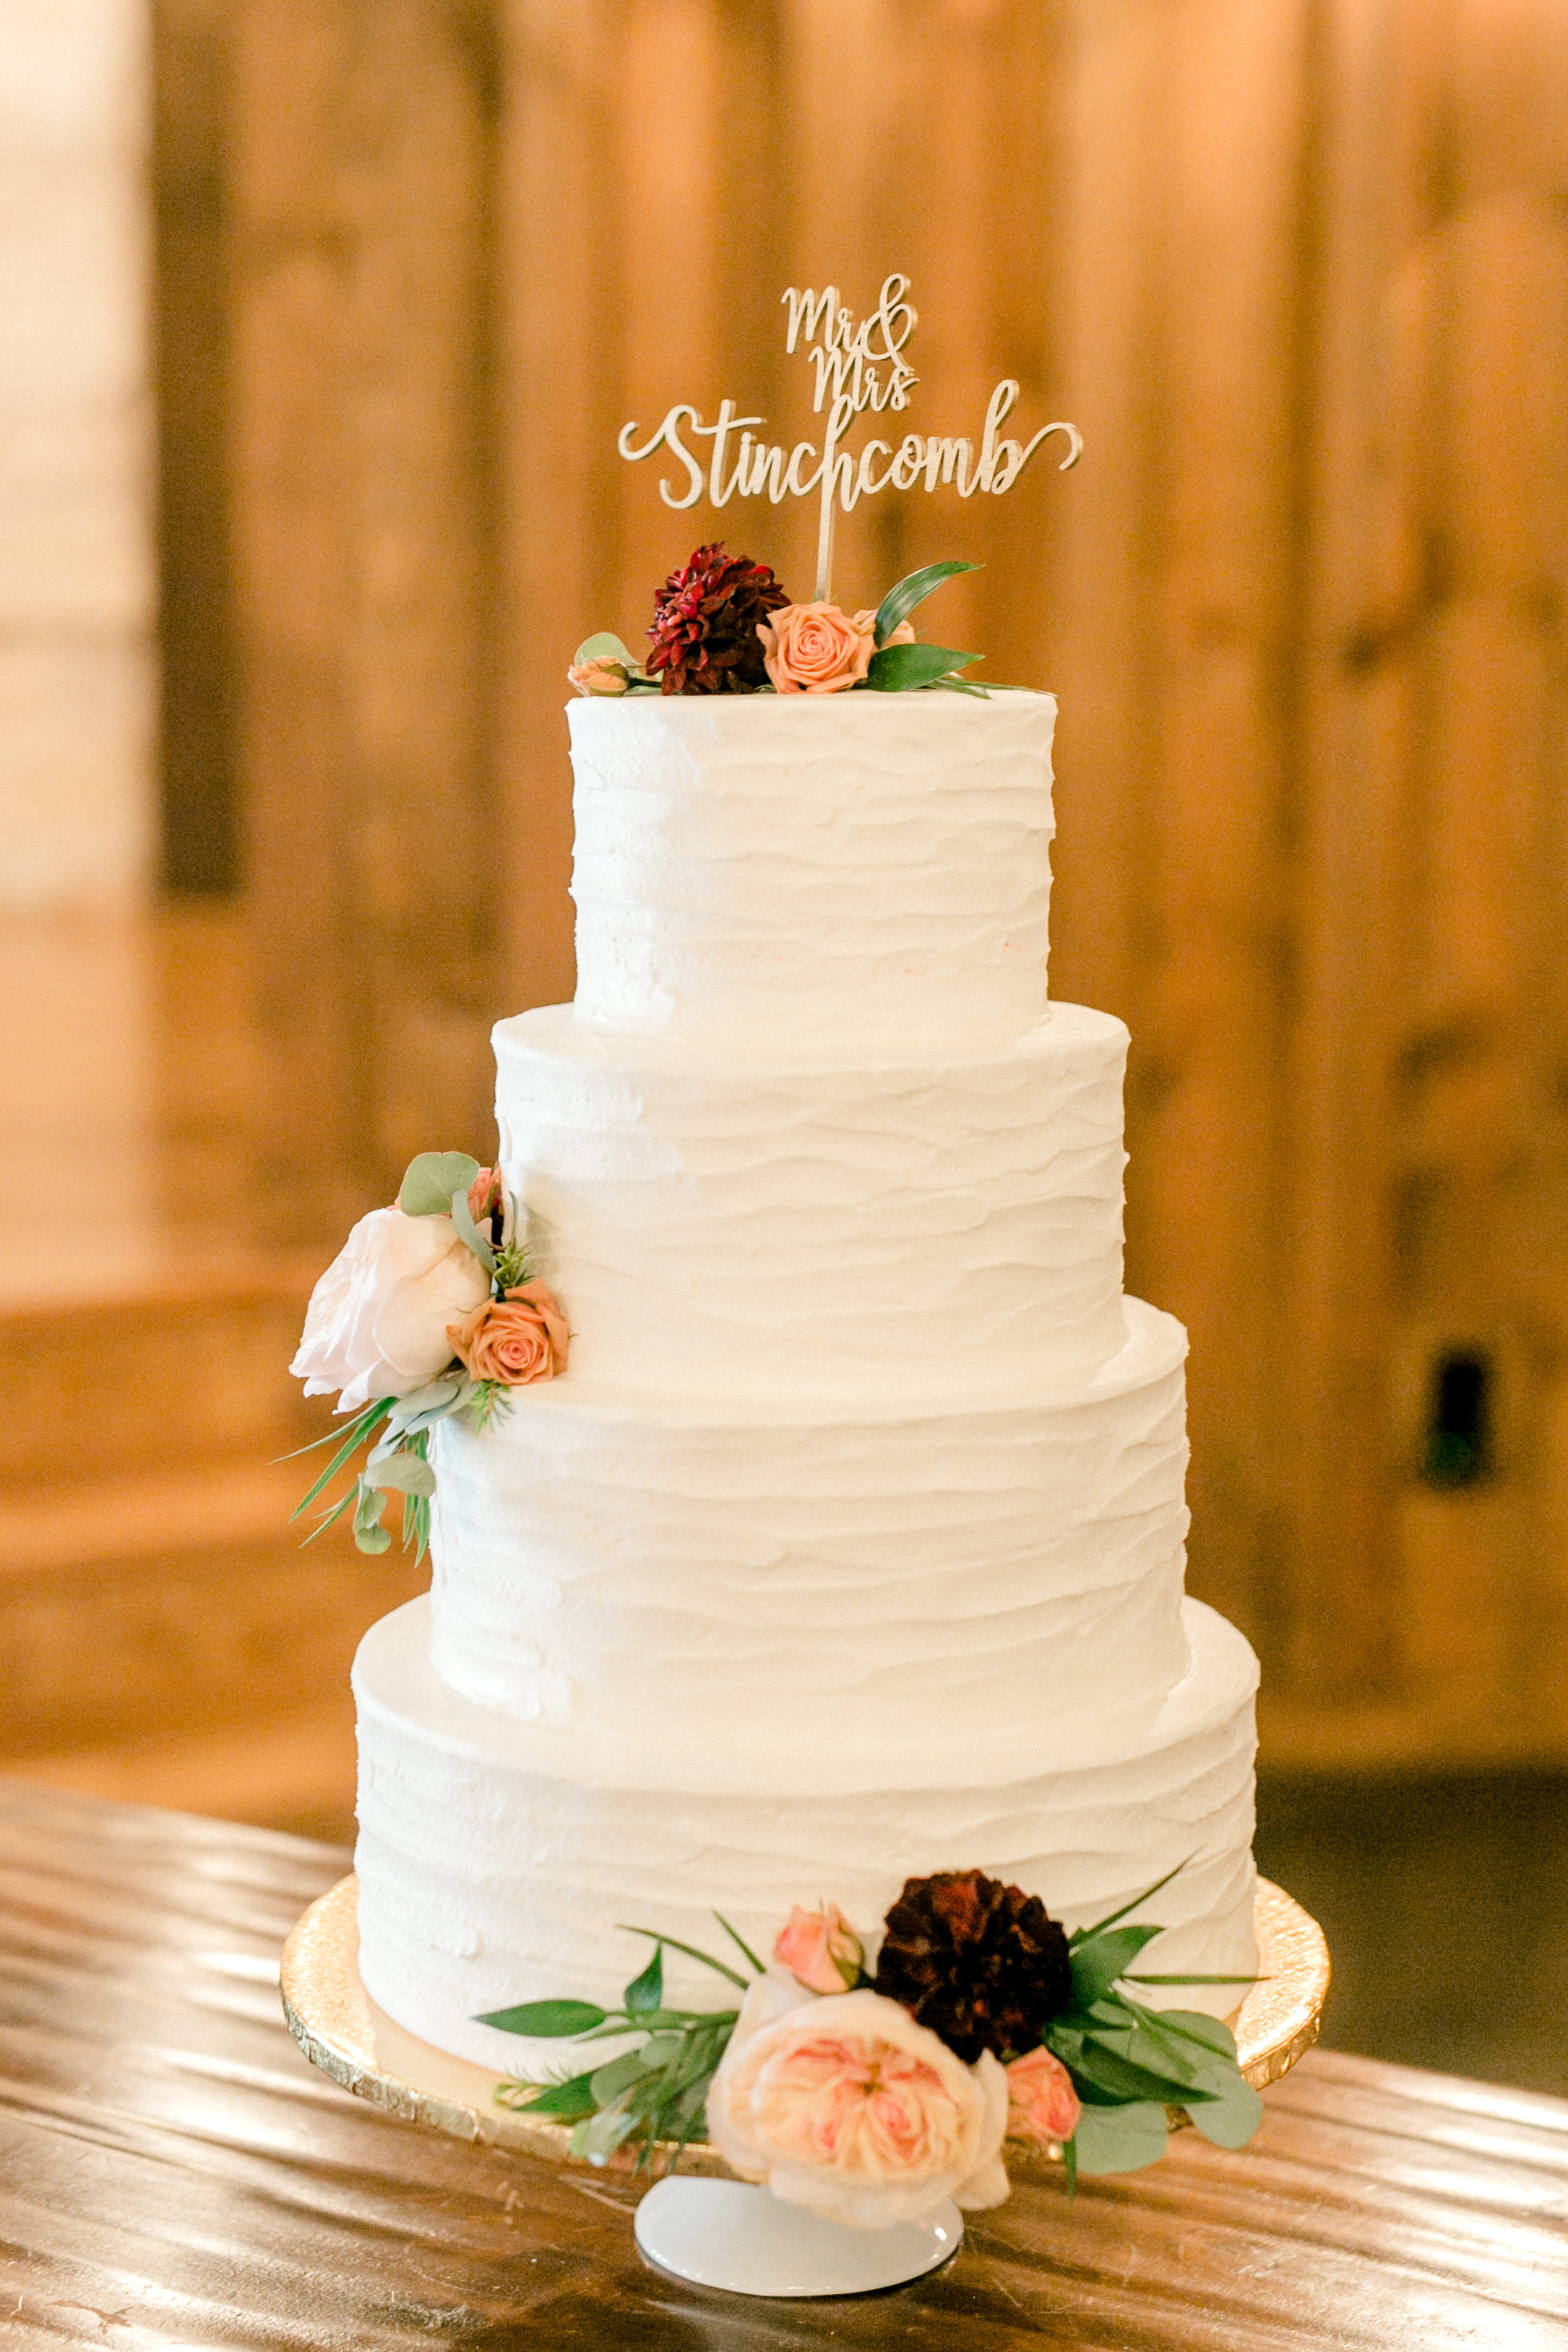 Natalie-and-Trent-Wedding-Day-THE-SPRINGS-EVENT-VENUE-Norman-Oklahoma-by-Emily-Nicole-Photo-1089.jpg